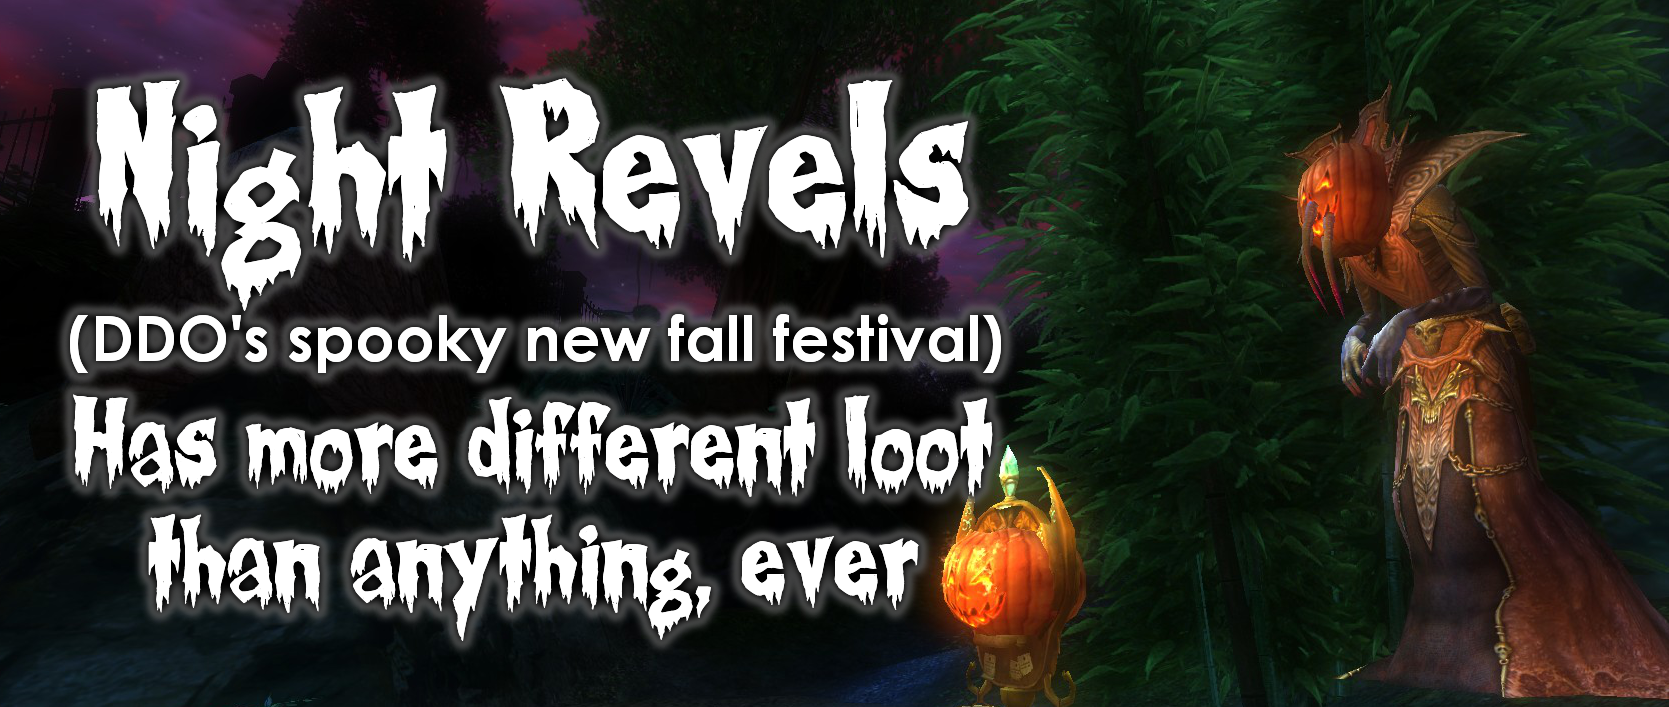 Night revels has more loot than anything